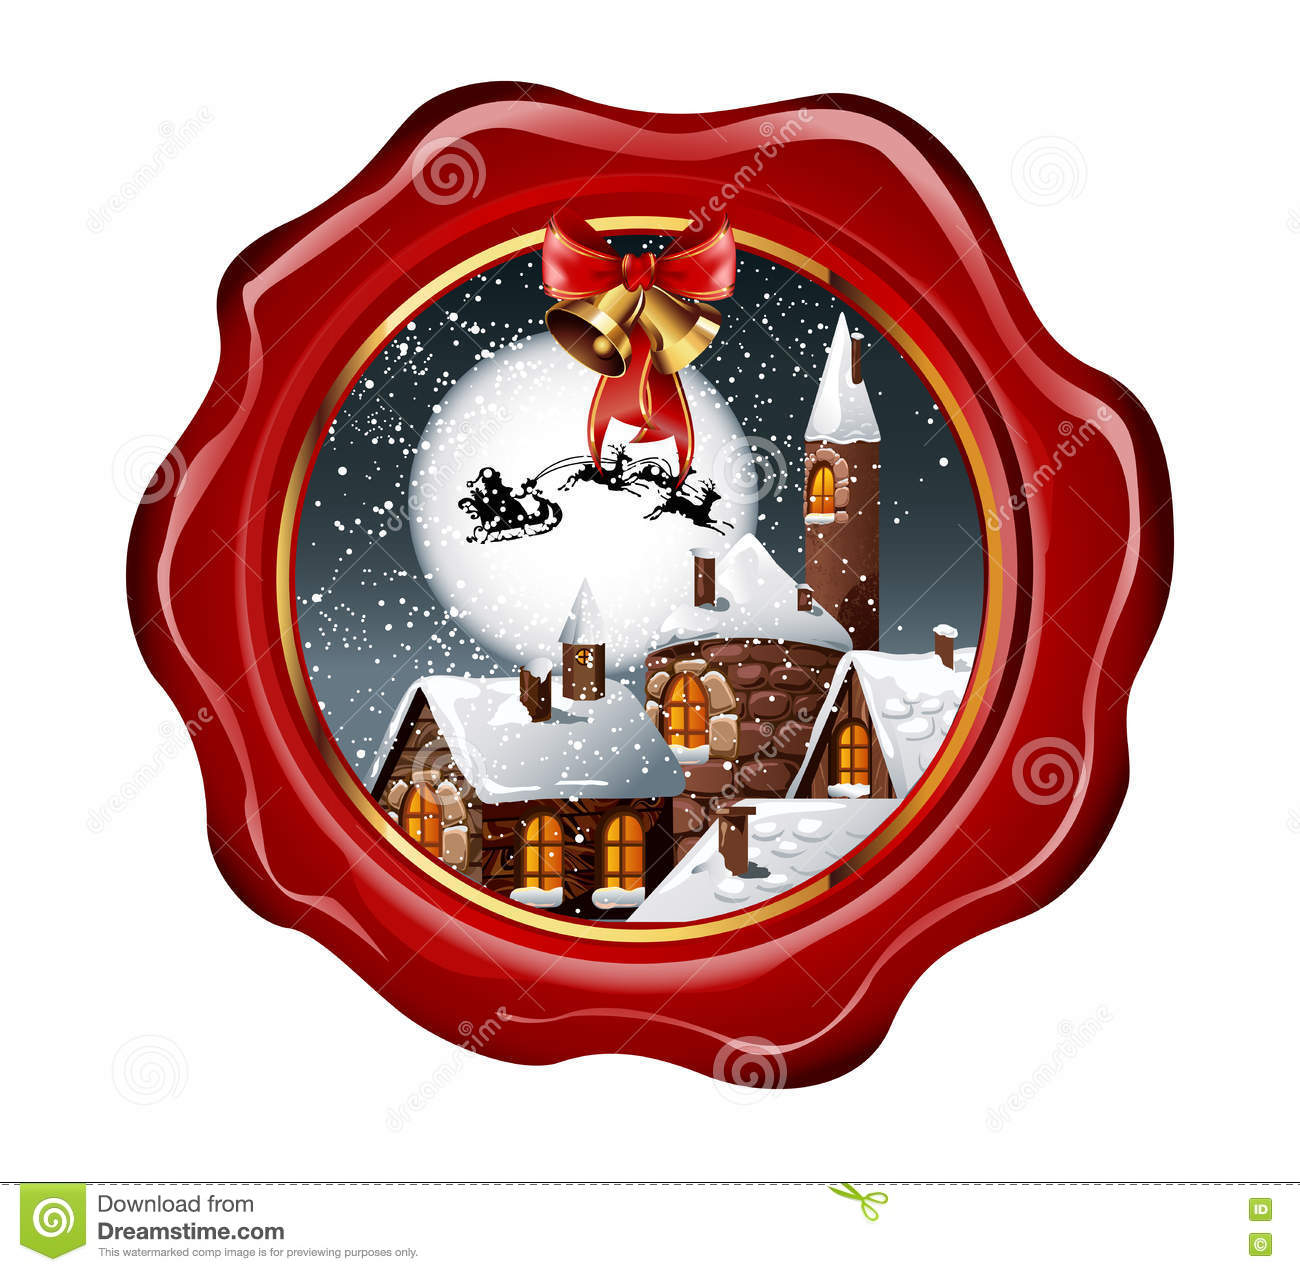 ed43884a1c Christmas illustration of wax seal with snowy town and santa claus flying  on his sleigh on the nighty skies. Vector Illustration.